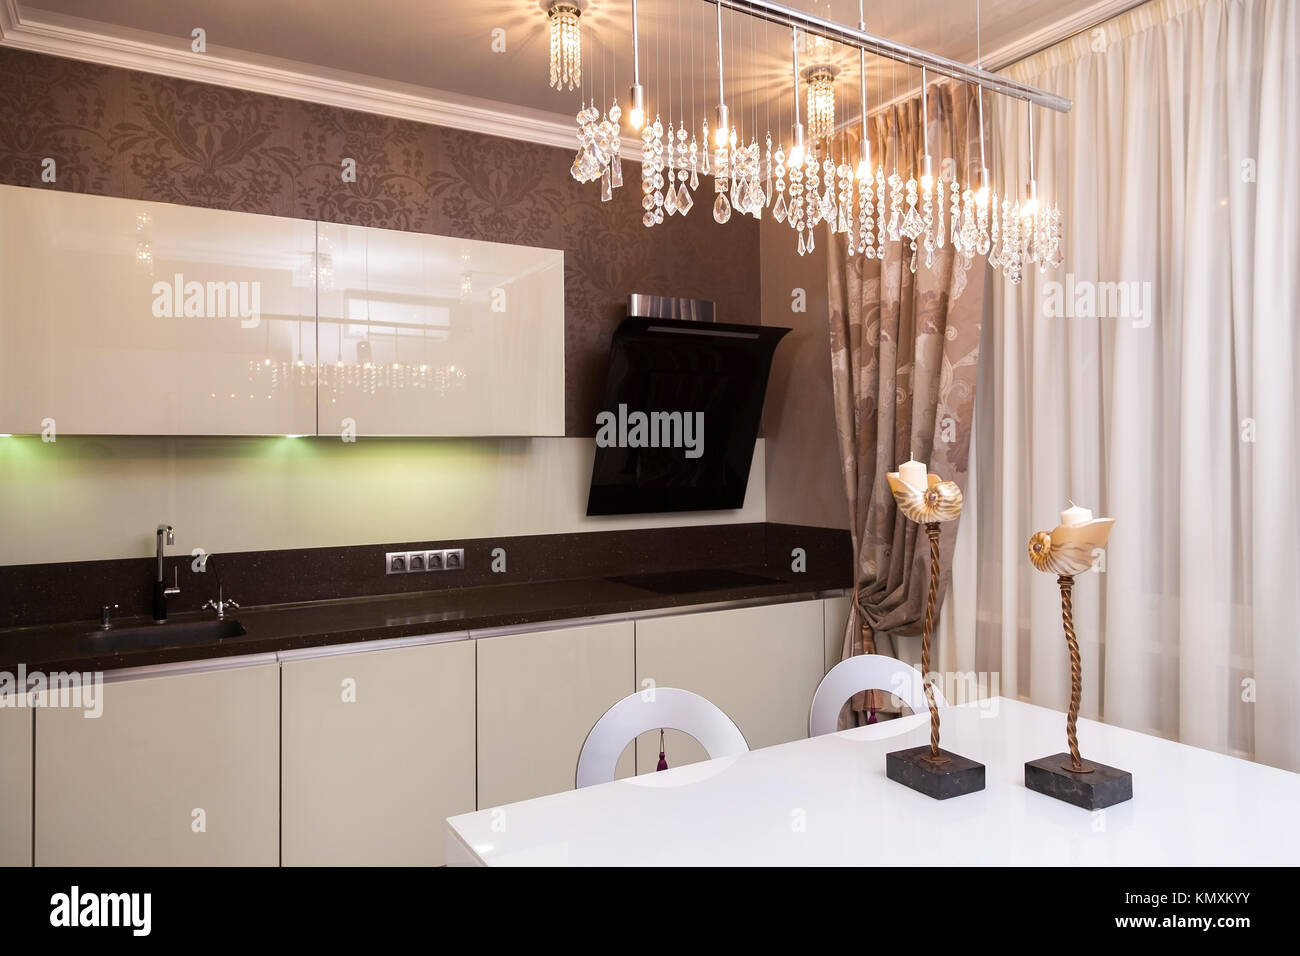 Luxury Hi Tech Kitchen Interior Design Stock Photos & Luxury Hi Tech ...